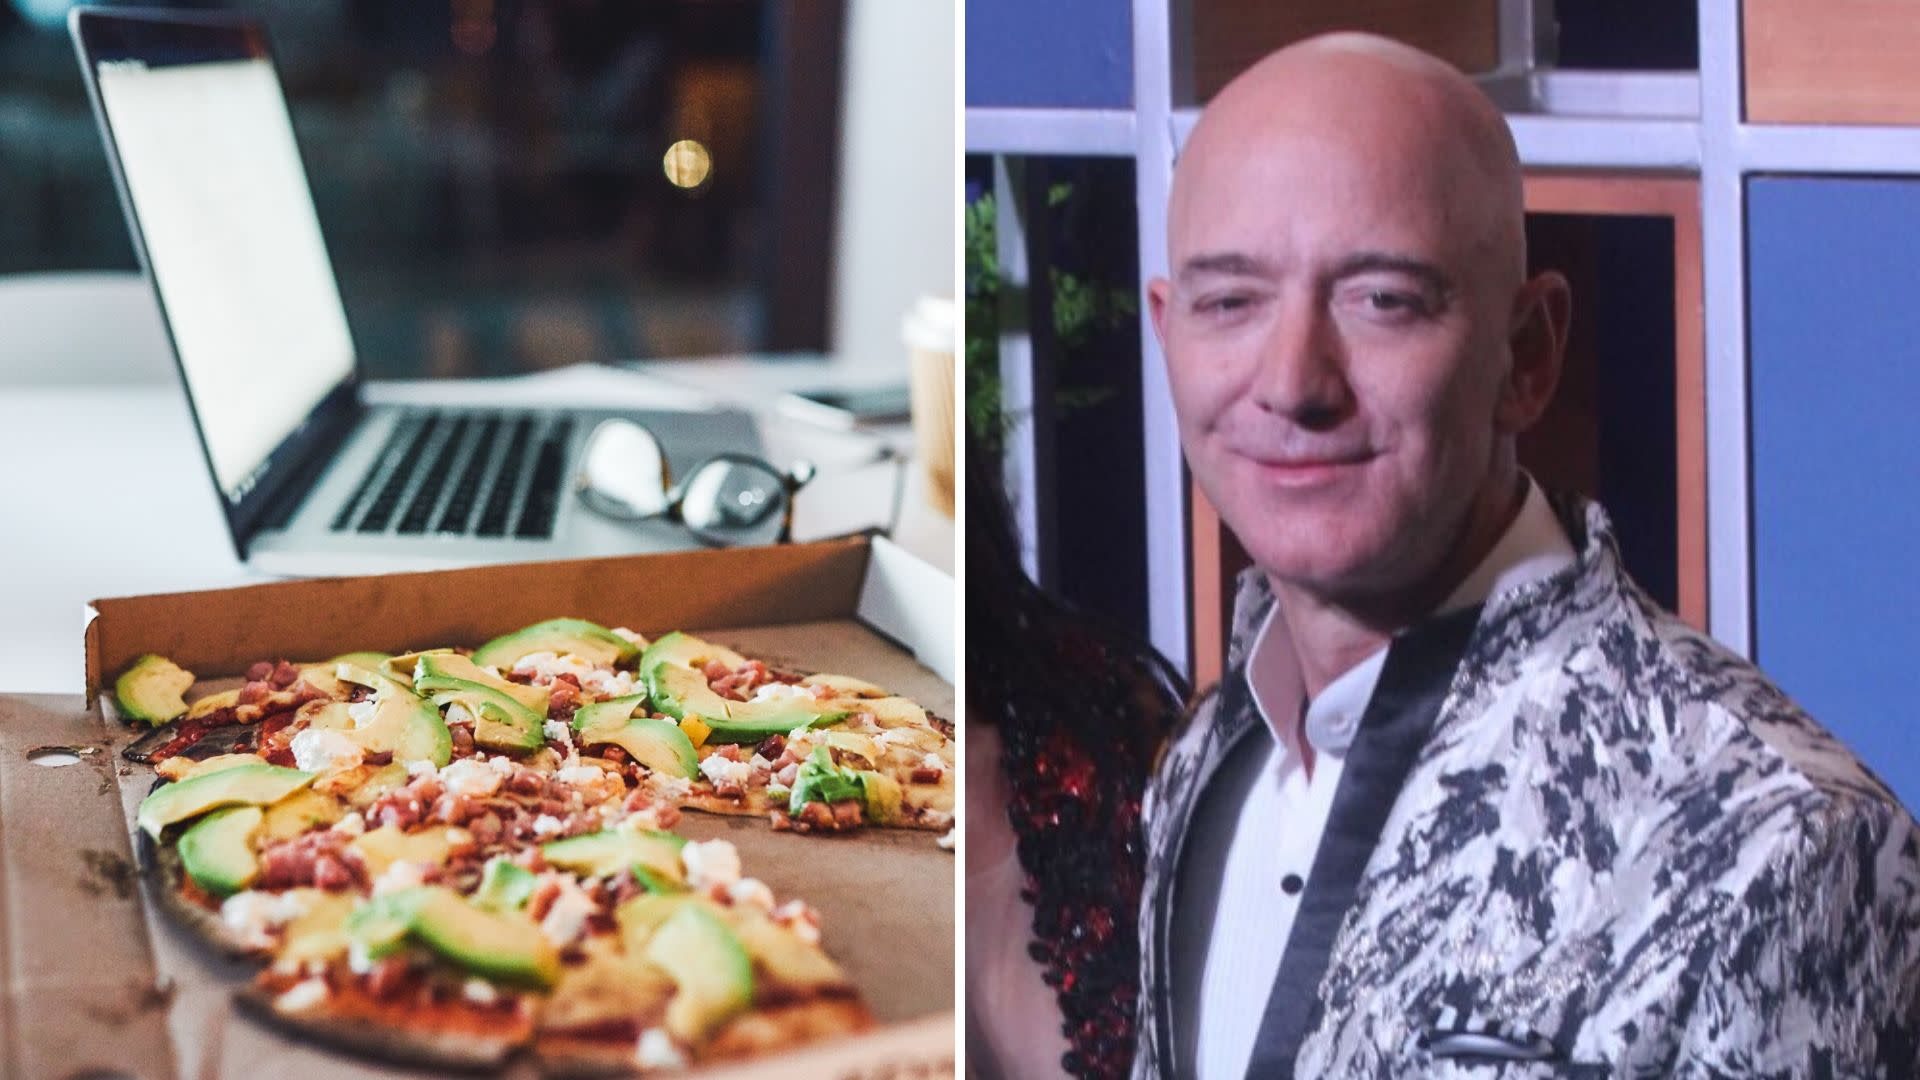 The rule that made Jeff Bezos the richest person in the world